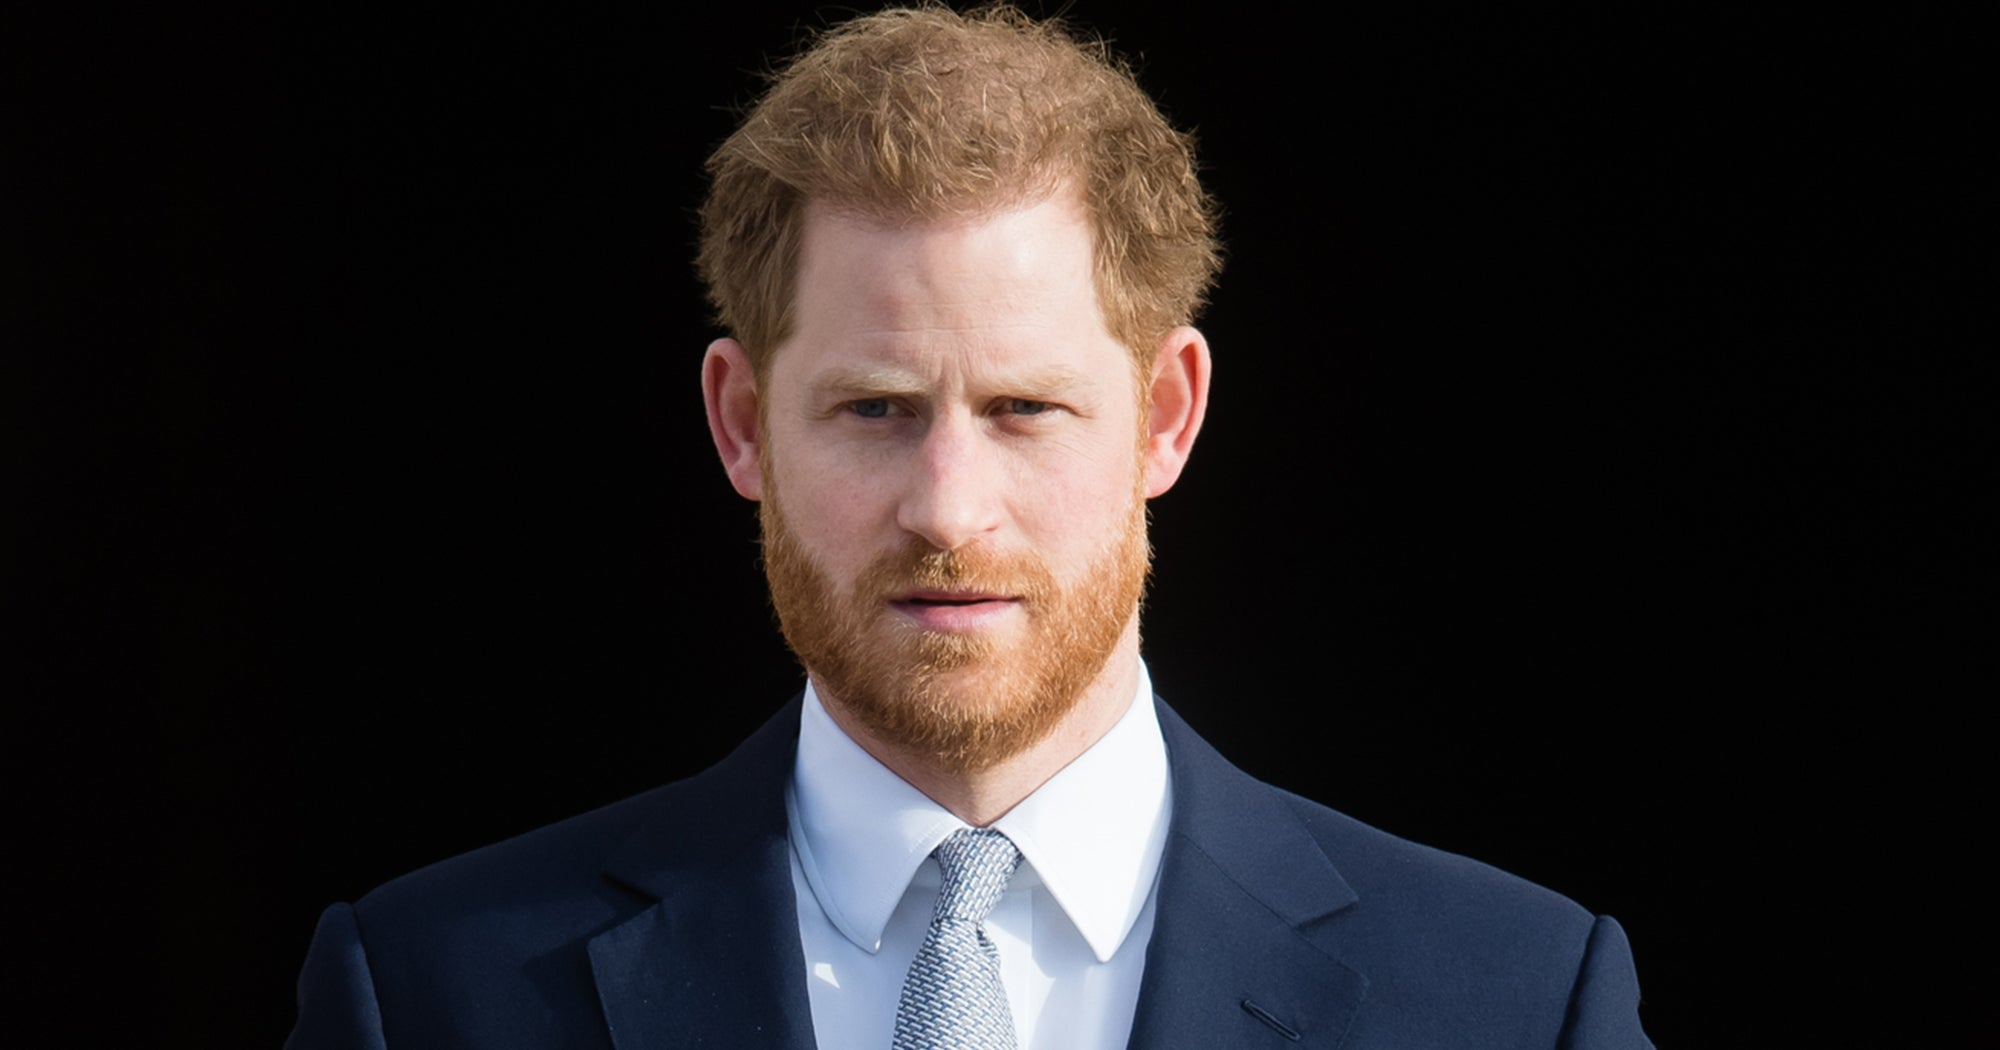 Prince Harry Just Changed His Name — Sorta